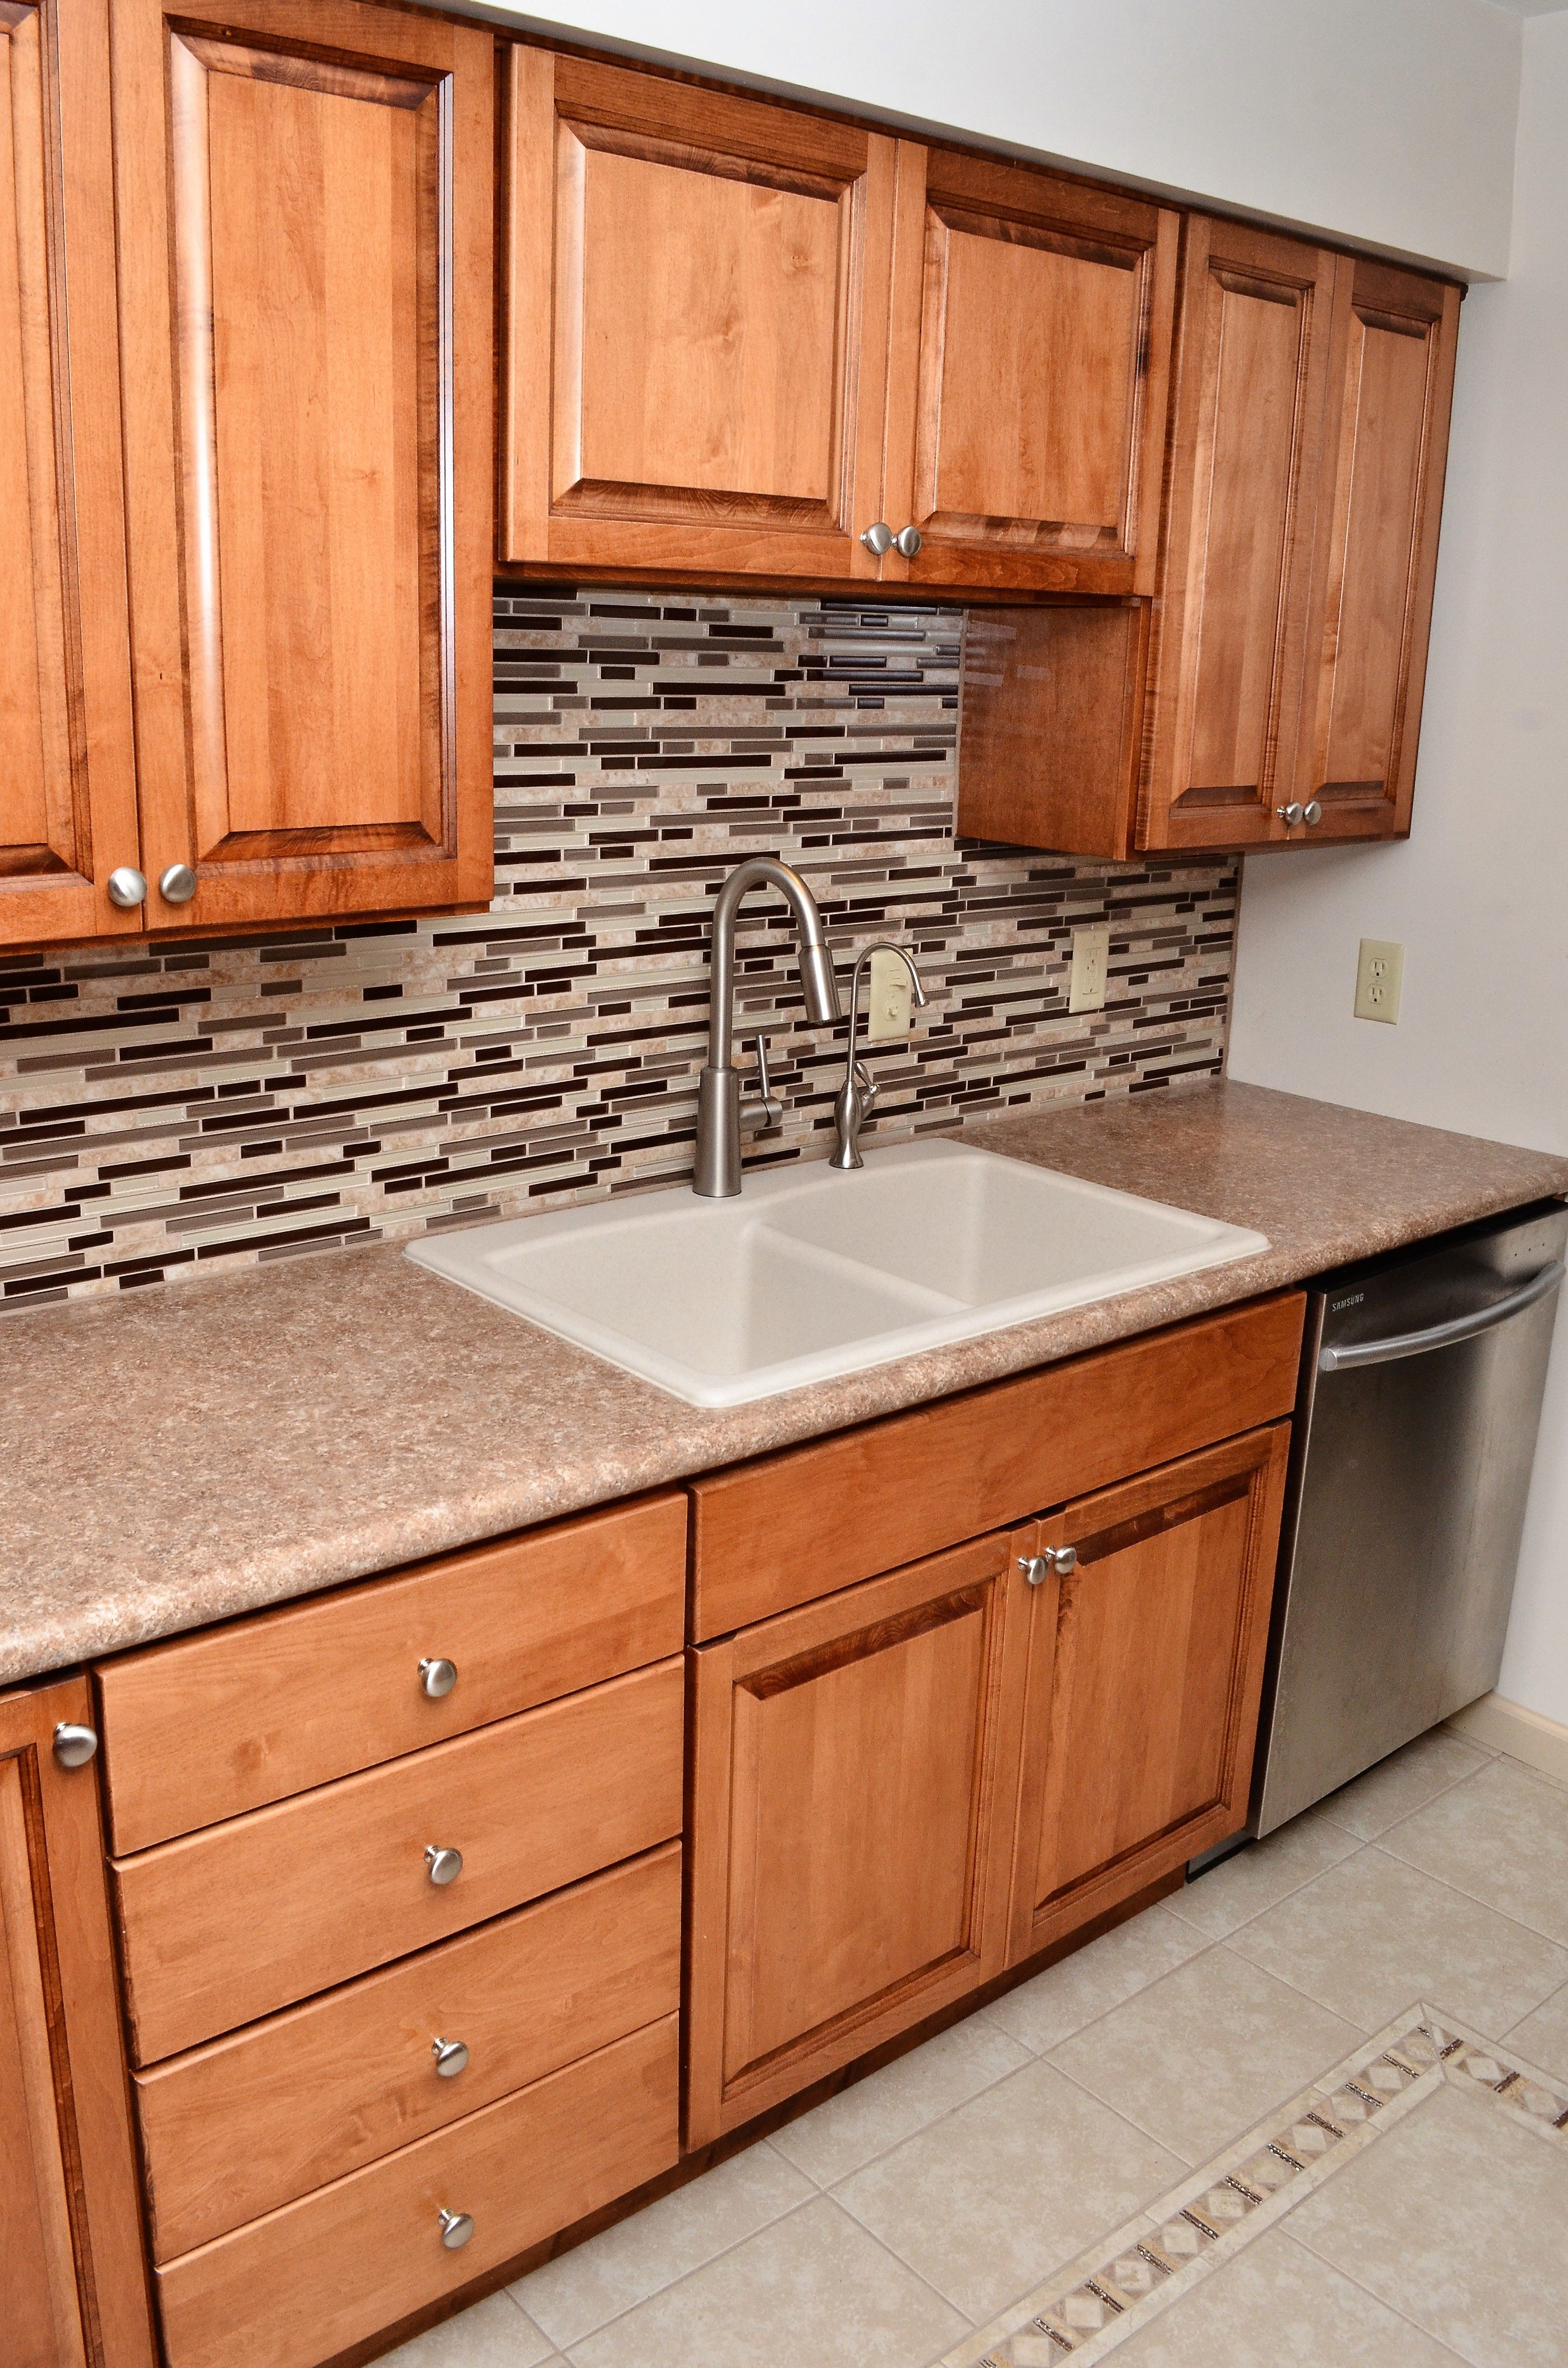 Haas Lifestyle Door Style Upland Maple Pecan Maple Cabinets Cabinetry Kitchen